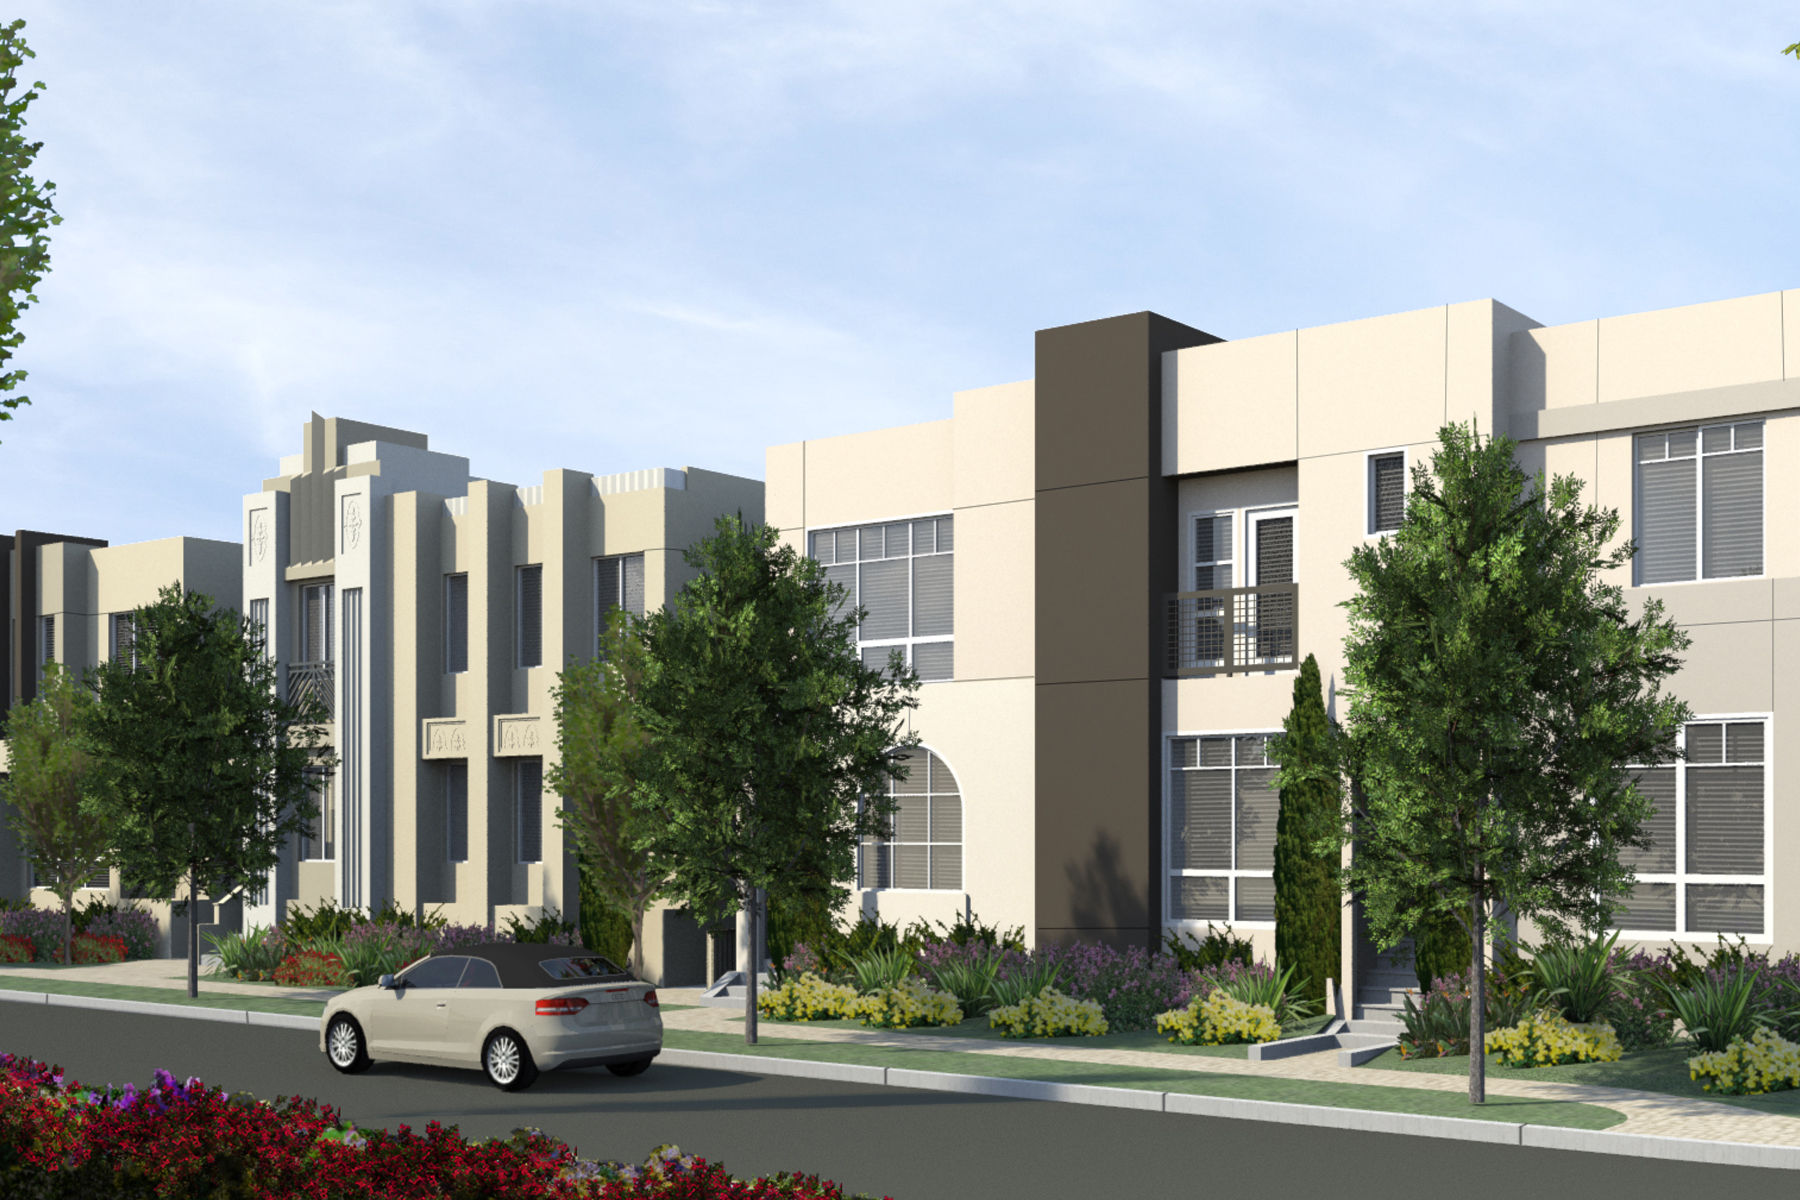 la new townhomes, gated townhomes, new la townhomes, south bay real estate